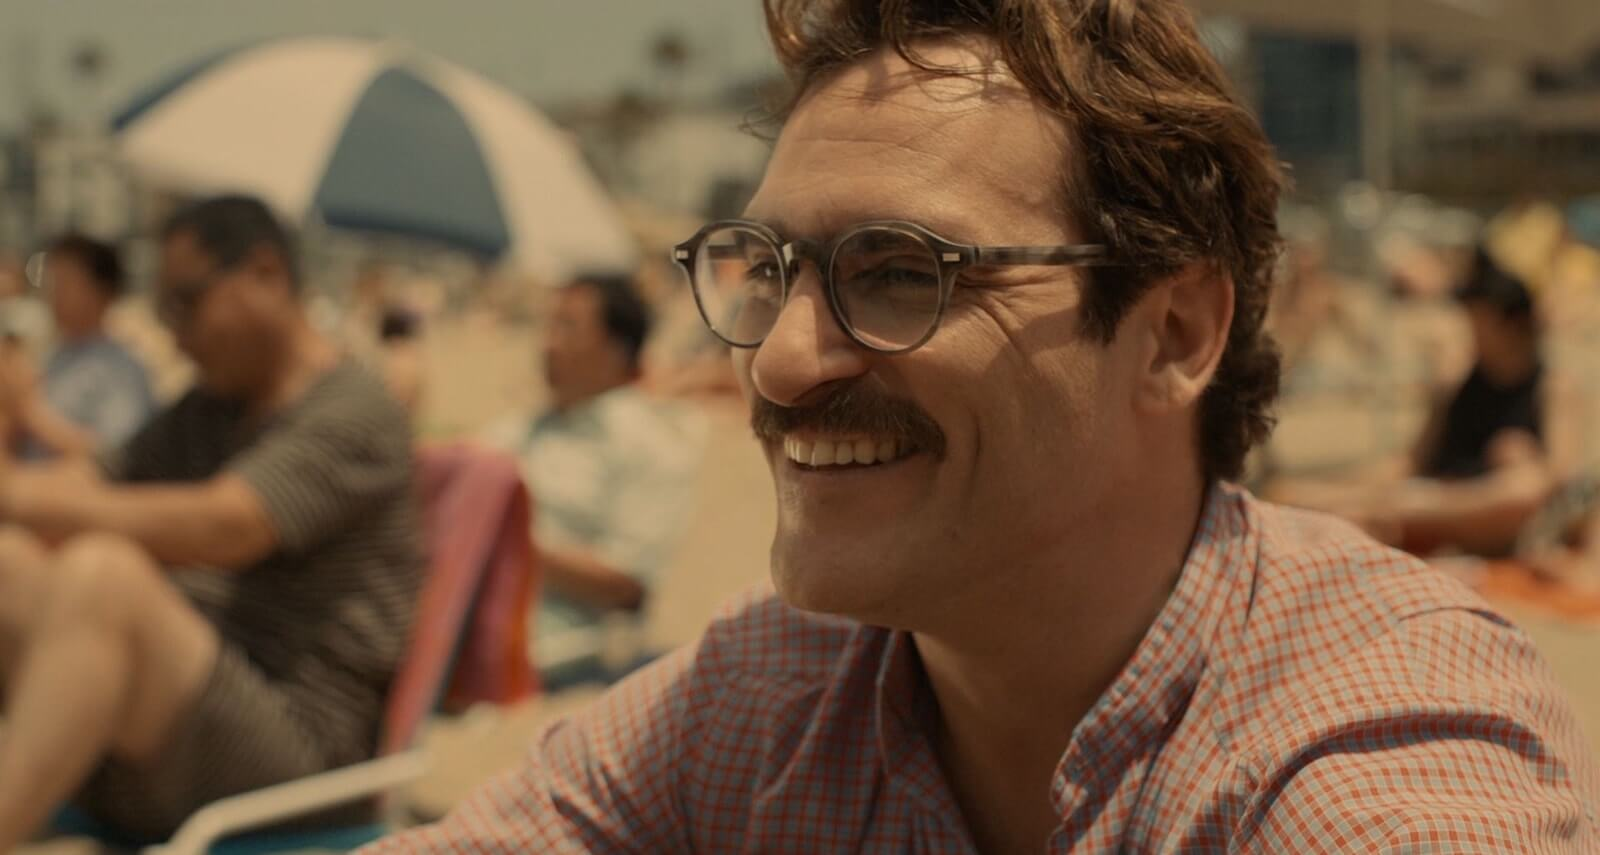 How Spike Jonze Shoots Movies About Loneliness - Close-Up